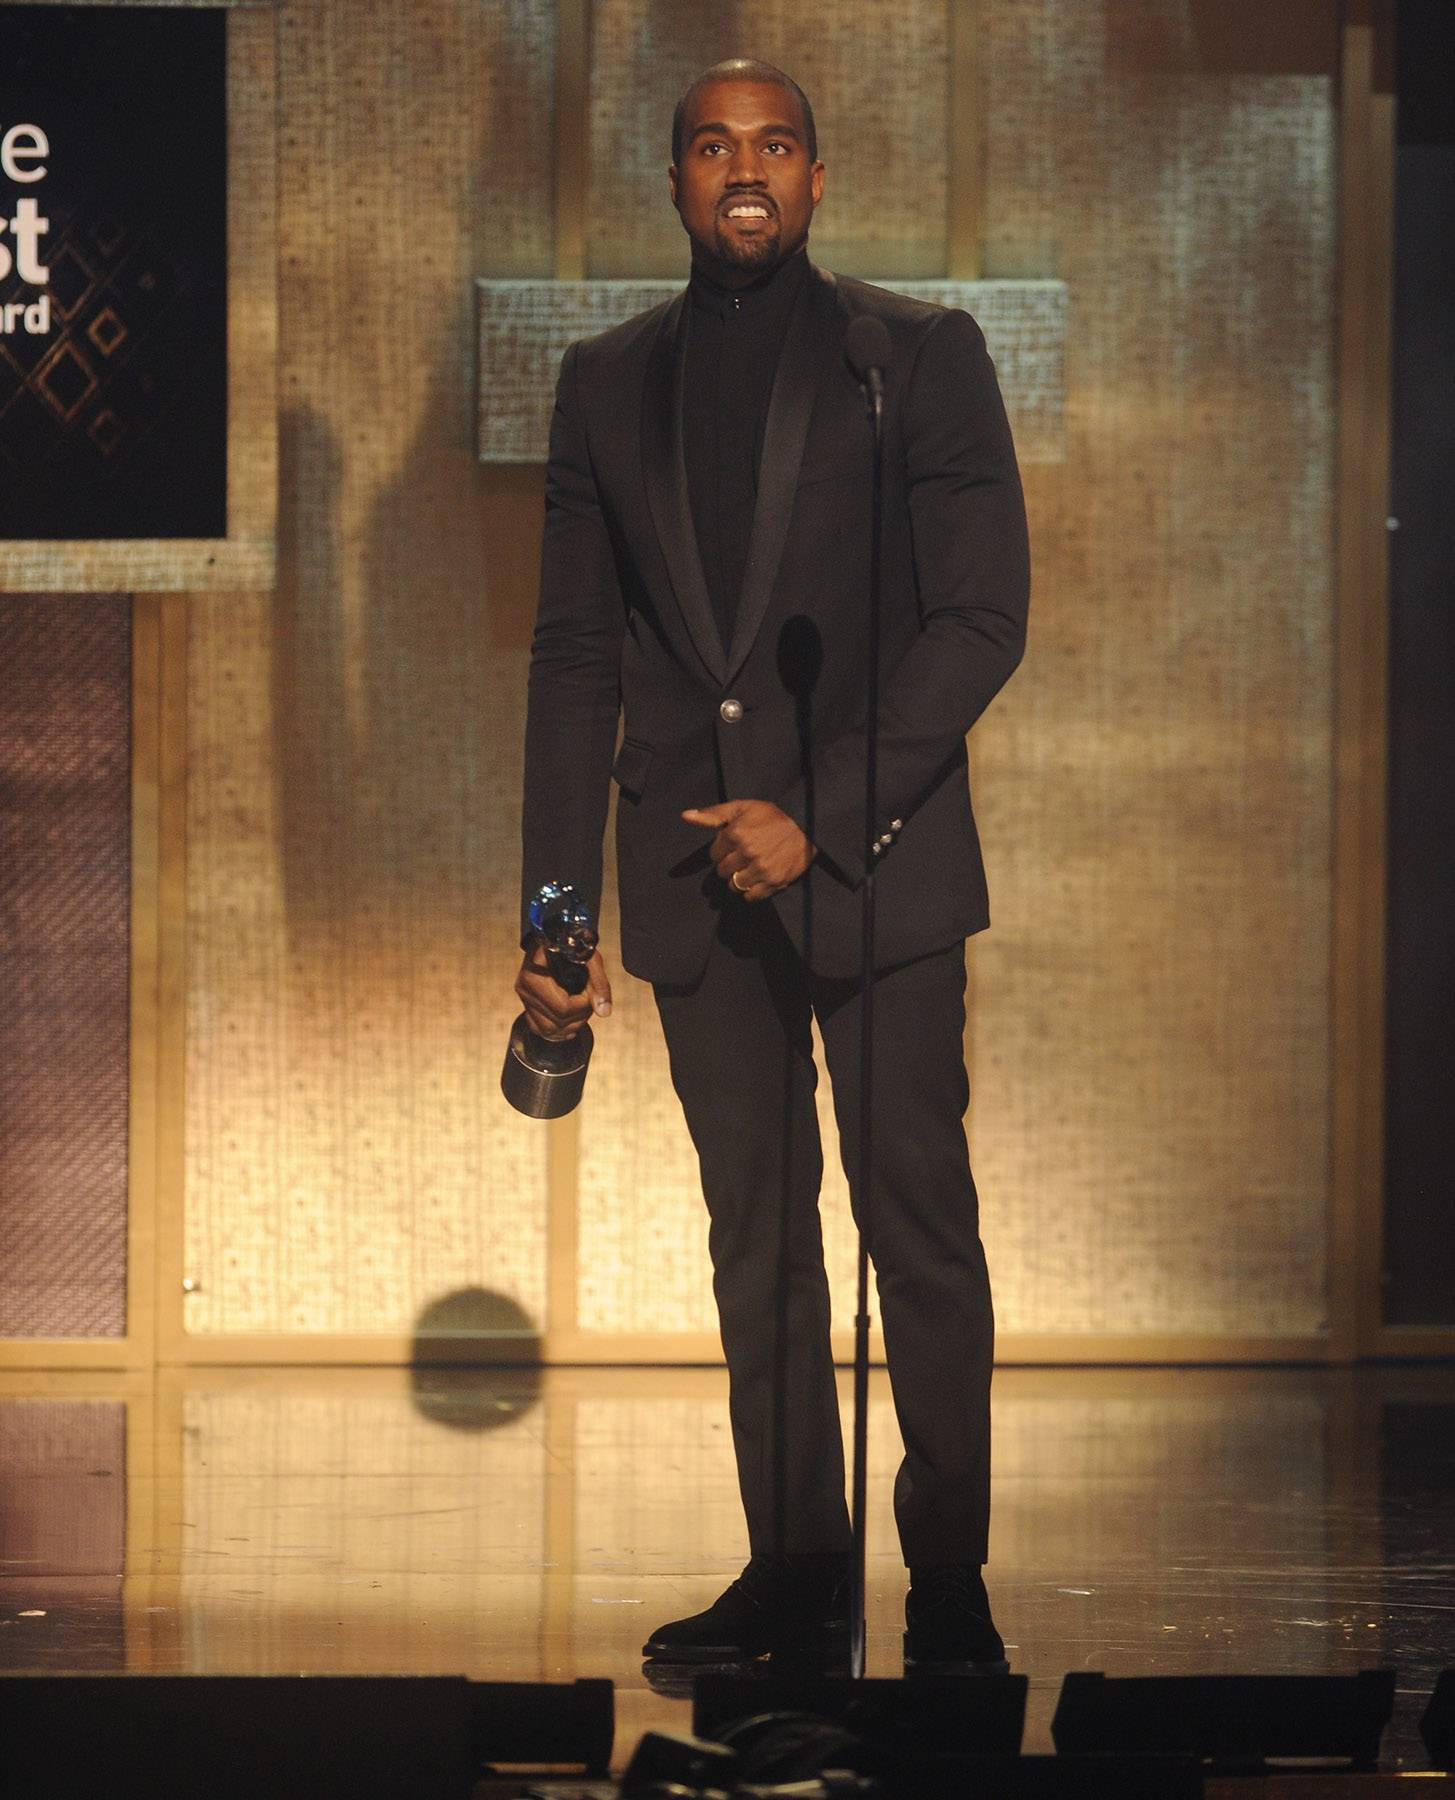 Yeezus Spits Knowledge  - The BET Honors Visionary Award honoreeKanye West gave one of the most esteemed speeches of the night and really woke up everyone in the room. The moment was sincere and epic! (Photo: Brad Barket/BET/Getty Images for BET)